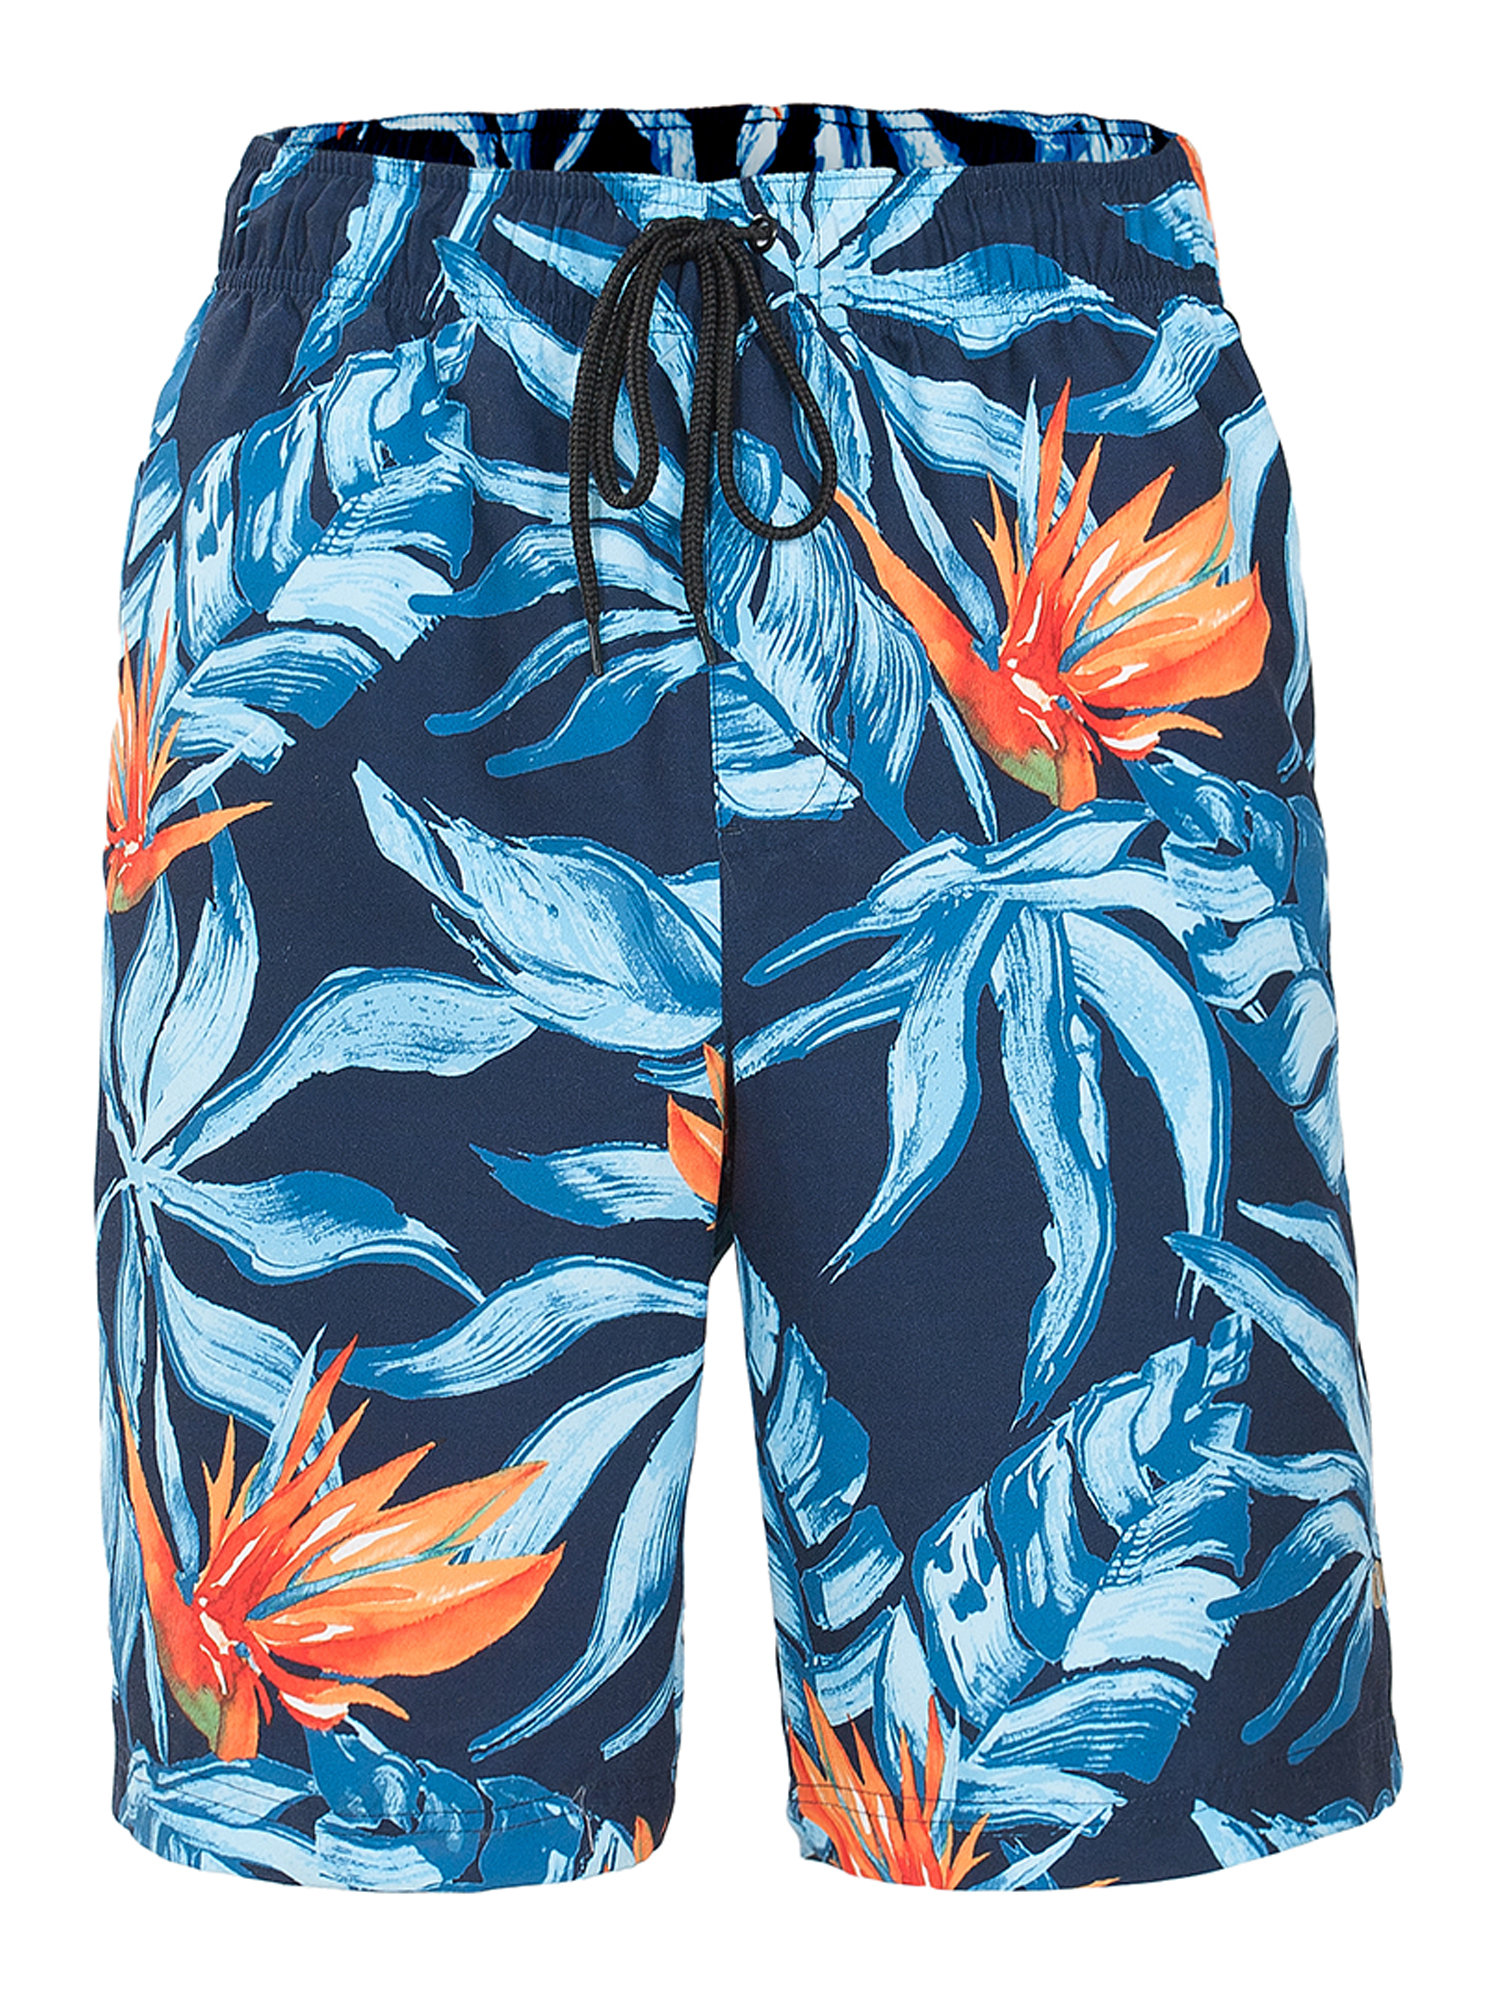 Womens Print Beach Shorts with Pockets Quick Dry Boardshort Swimming Trunks Tropical Short Jungle Bird